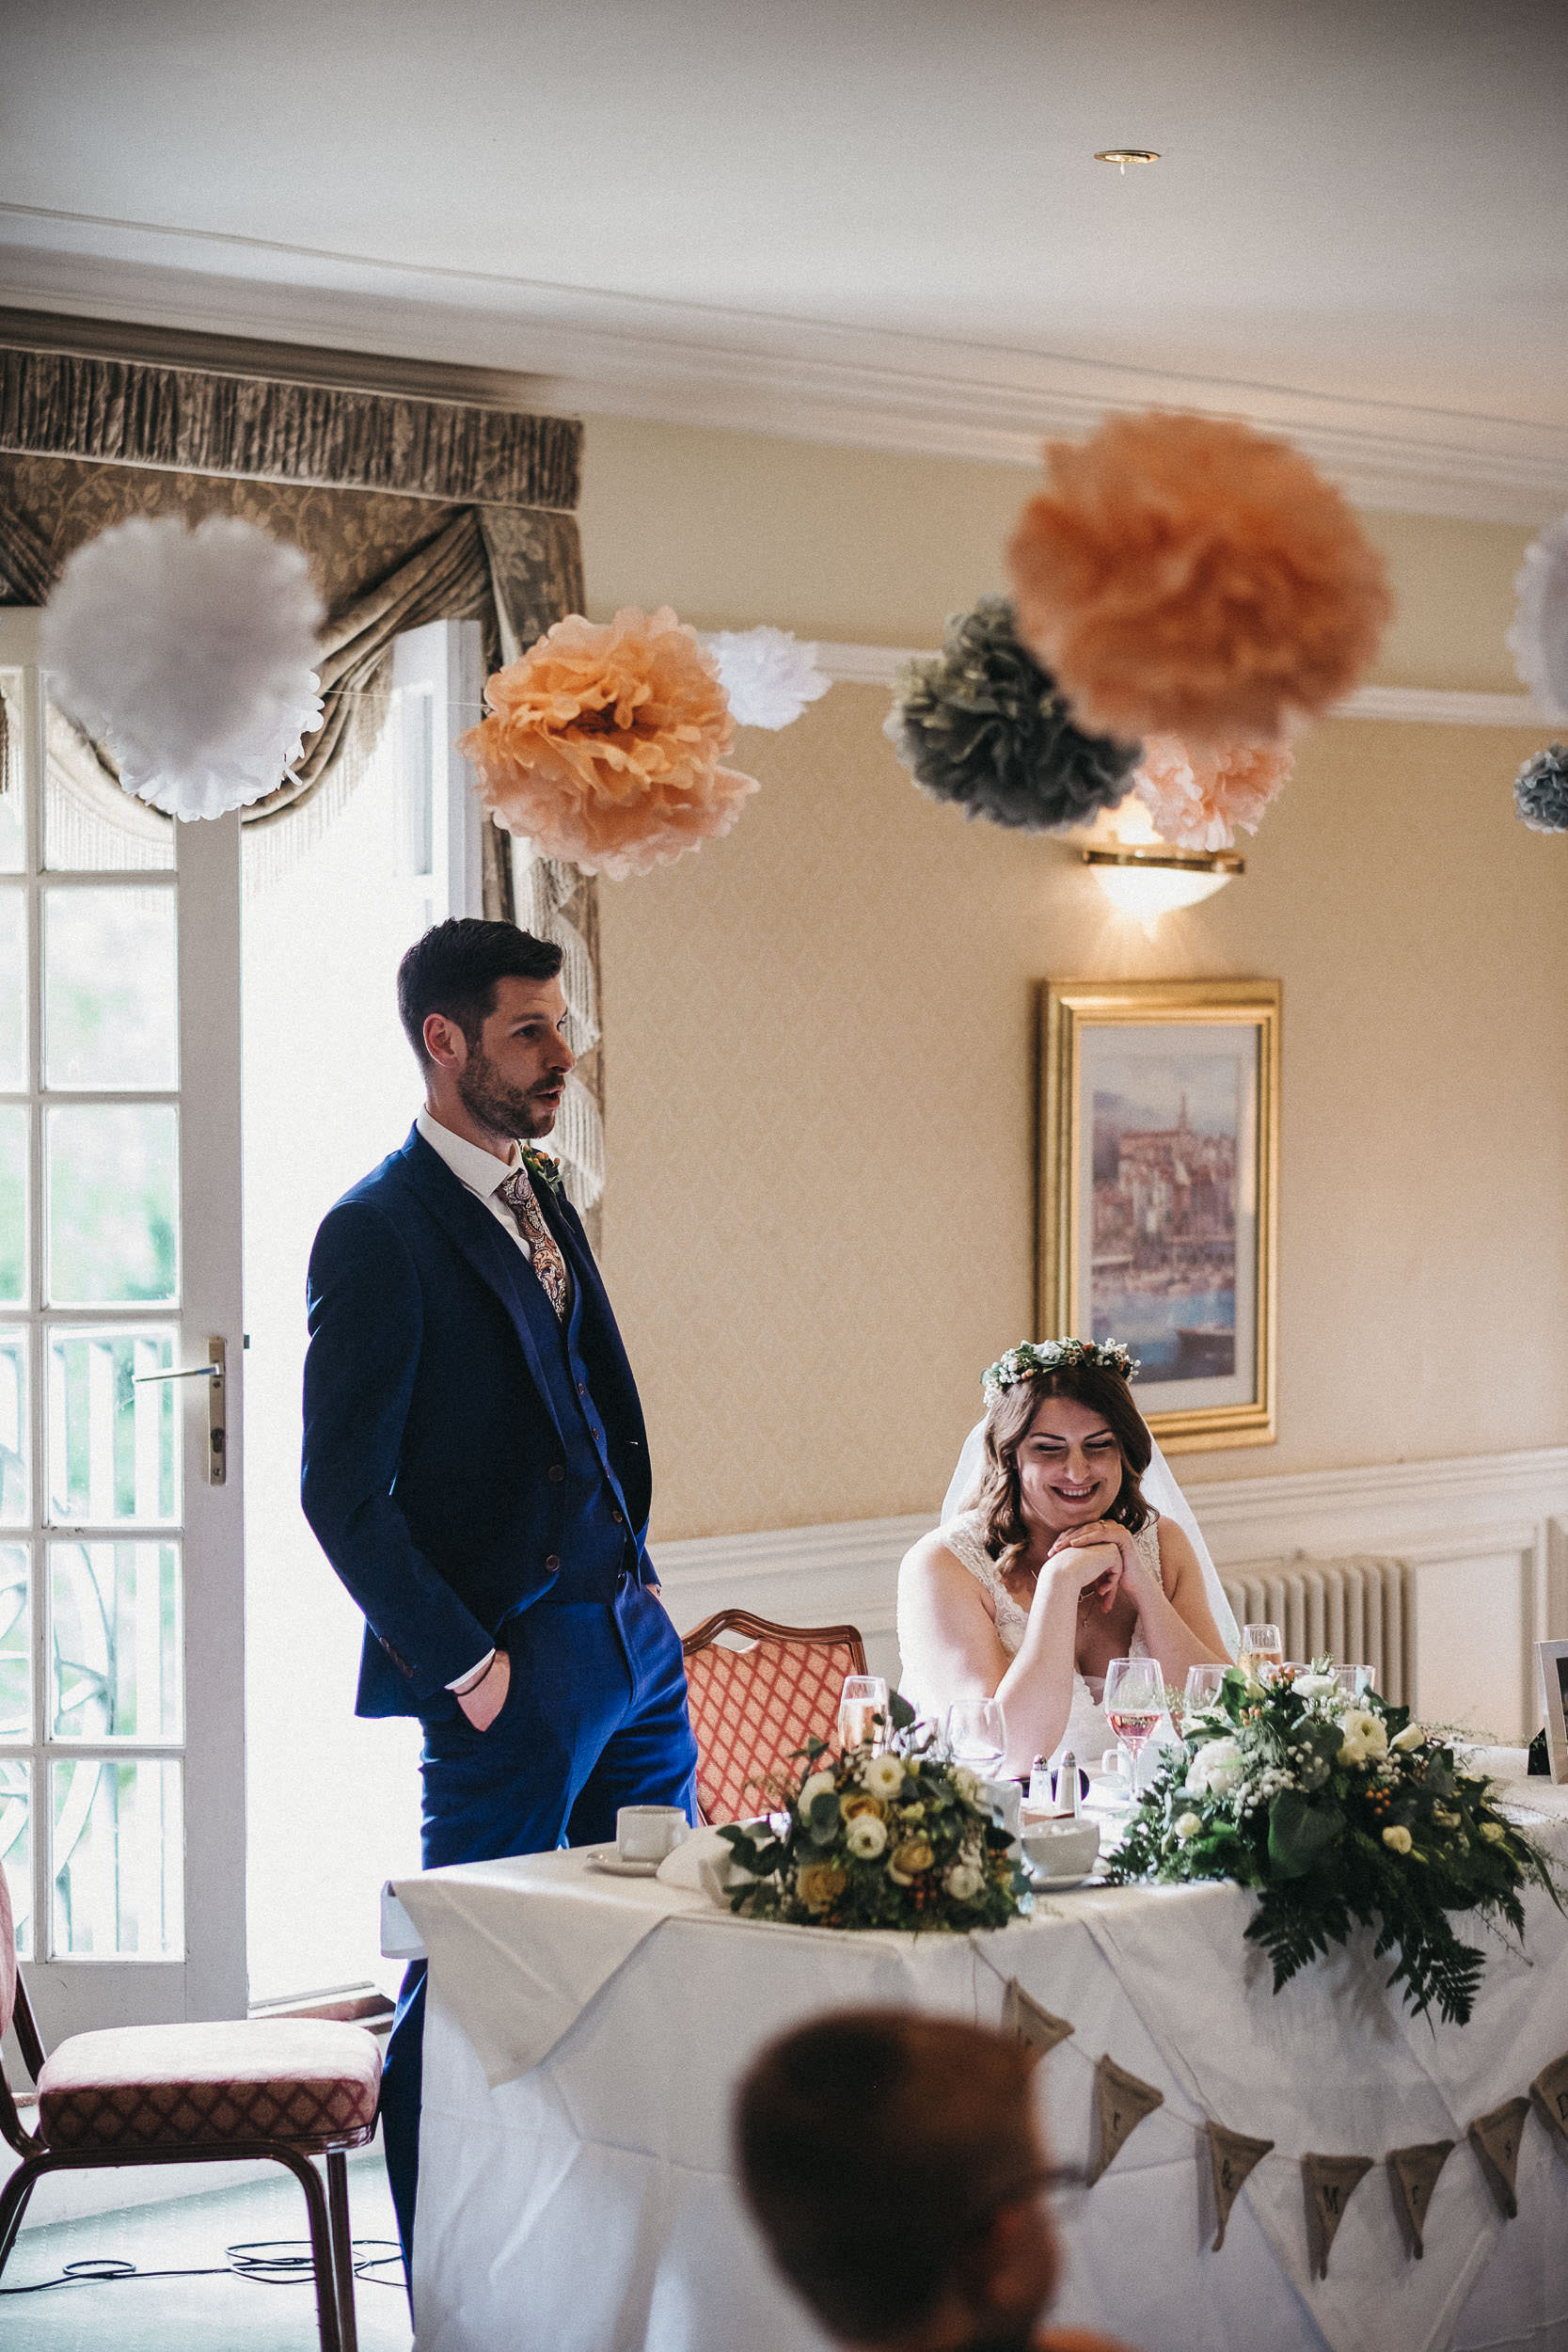 Bride smiling while groom gives wedding speech